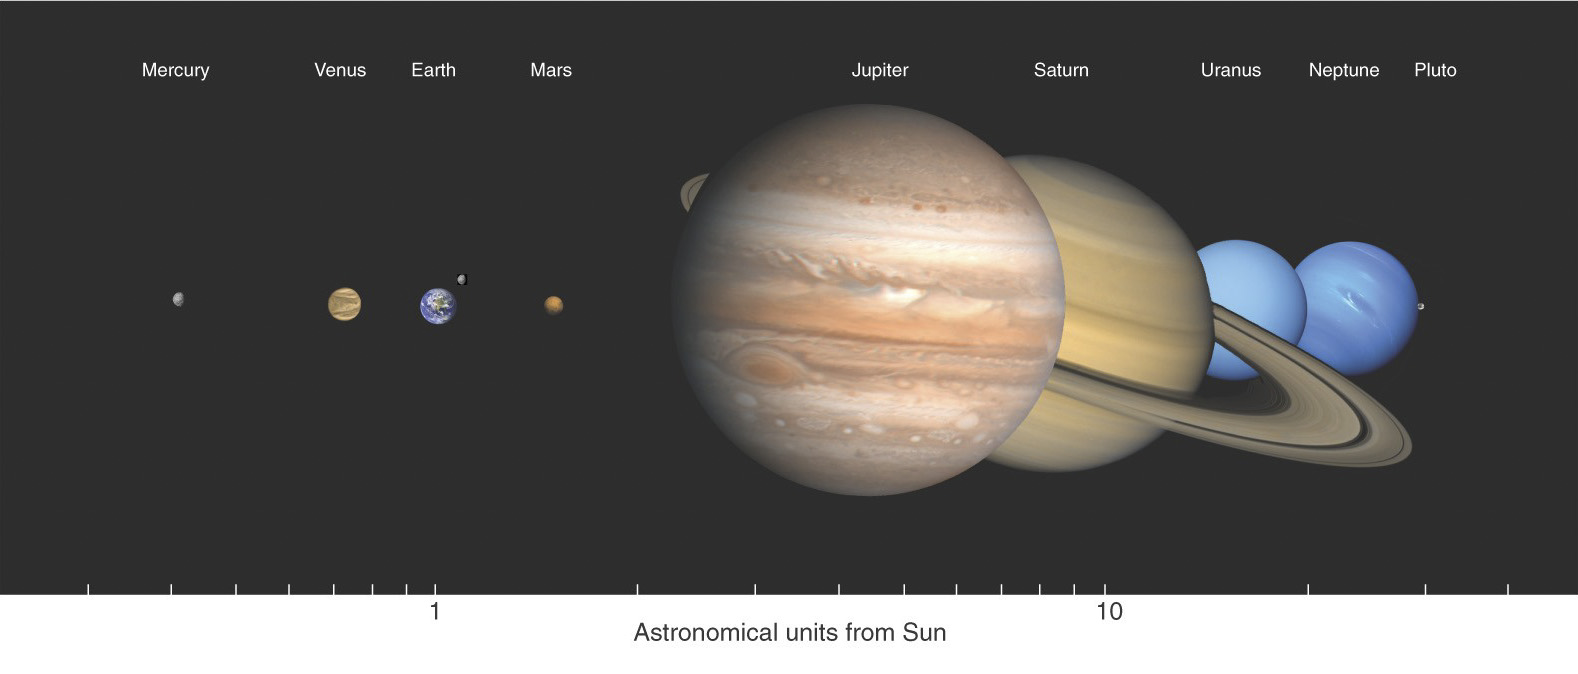 01sizesg figure 13 the relative sizes of the planetary bodies in the solar system are illustrated in these scale images the terrestrial planets along with the publicscrutiny Choice Image